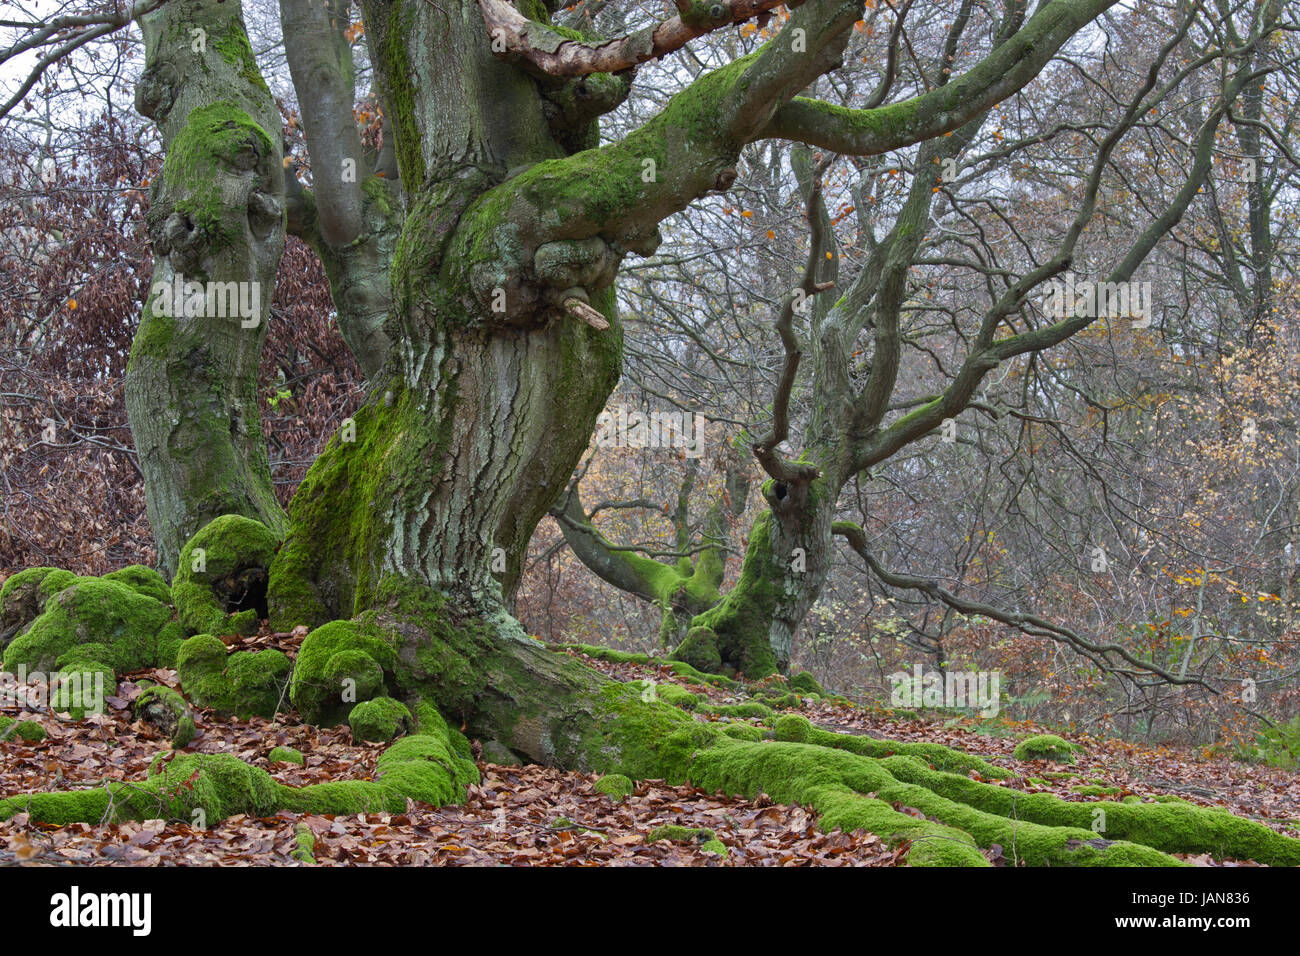 in hutewald - Stock Image